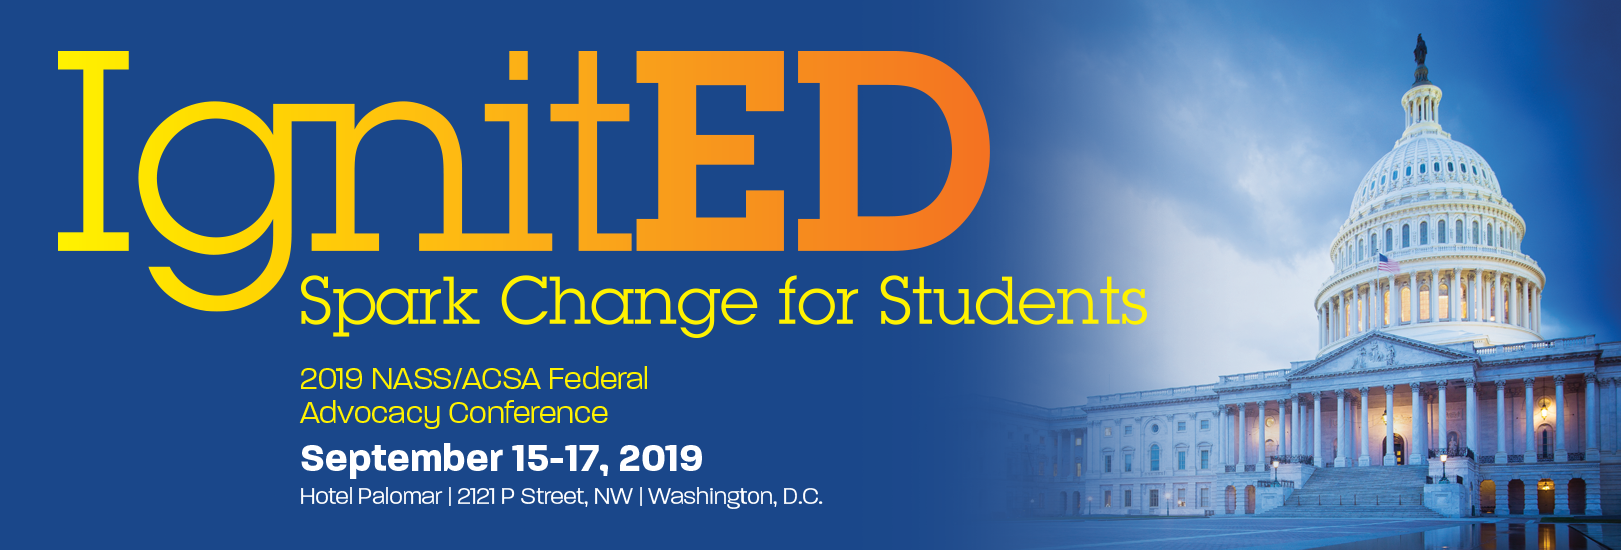 Ignited - Spark Change for Students at the NASS-ACSA Federal Advocacy Conference